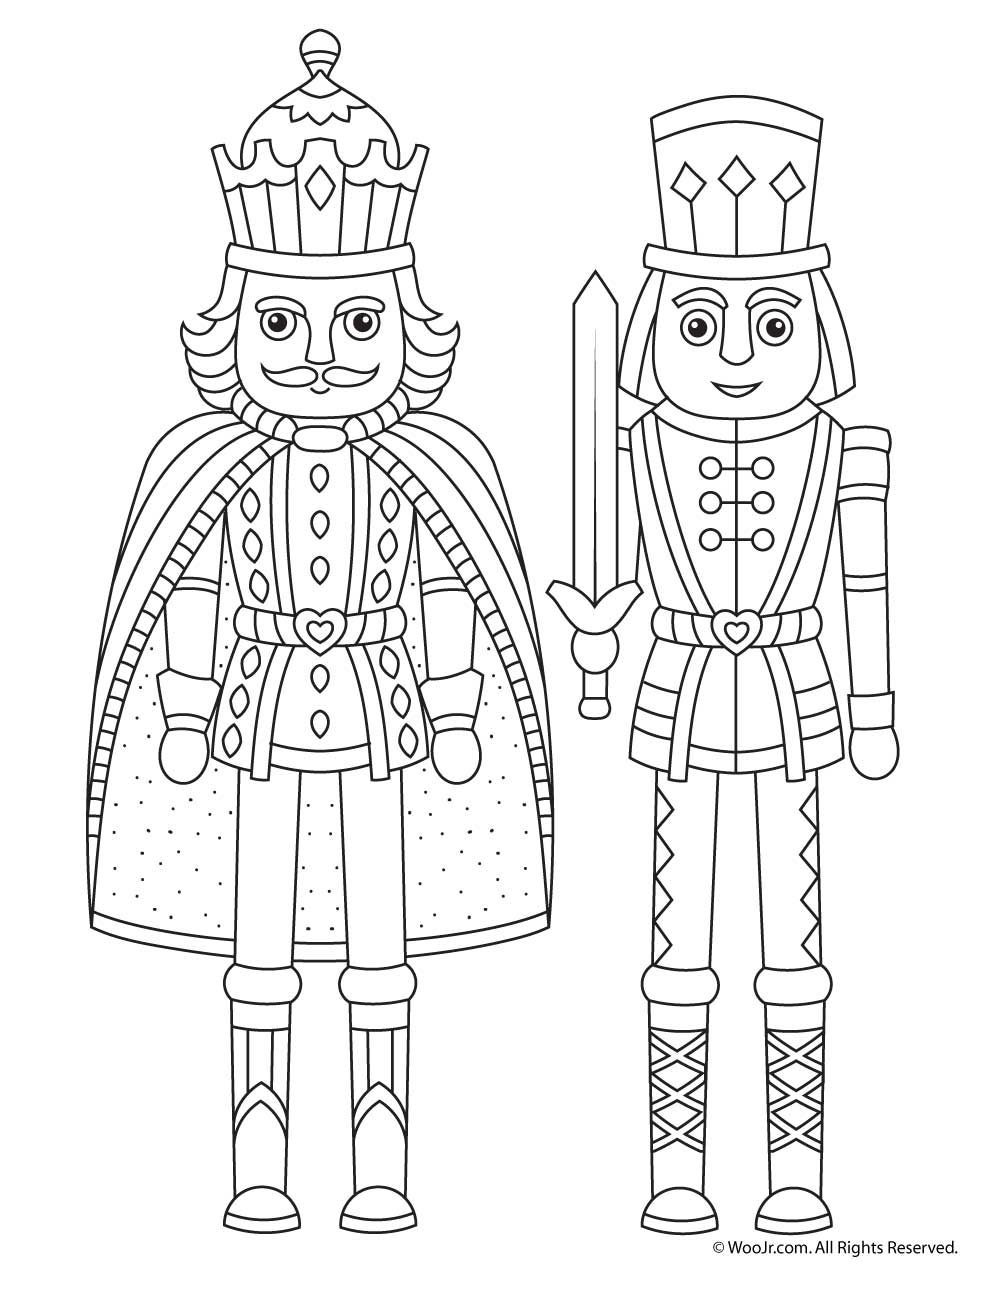 nutcracker christmas coloring page woo jr kids activities